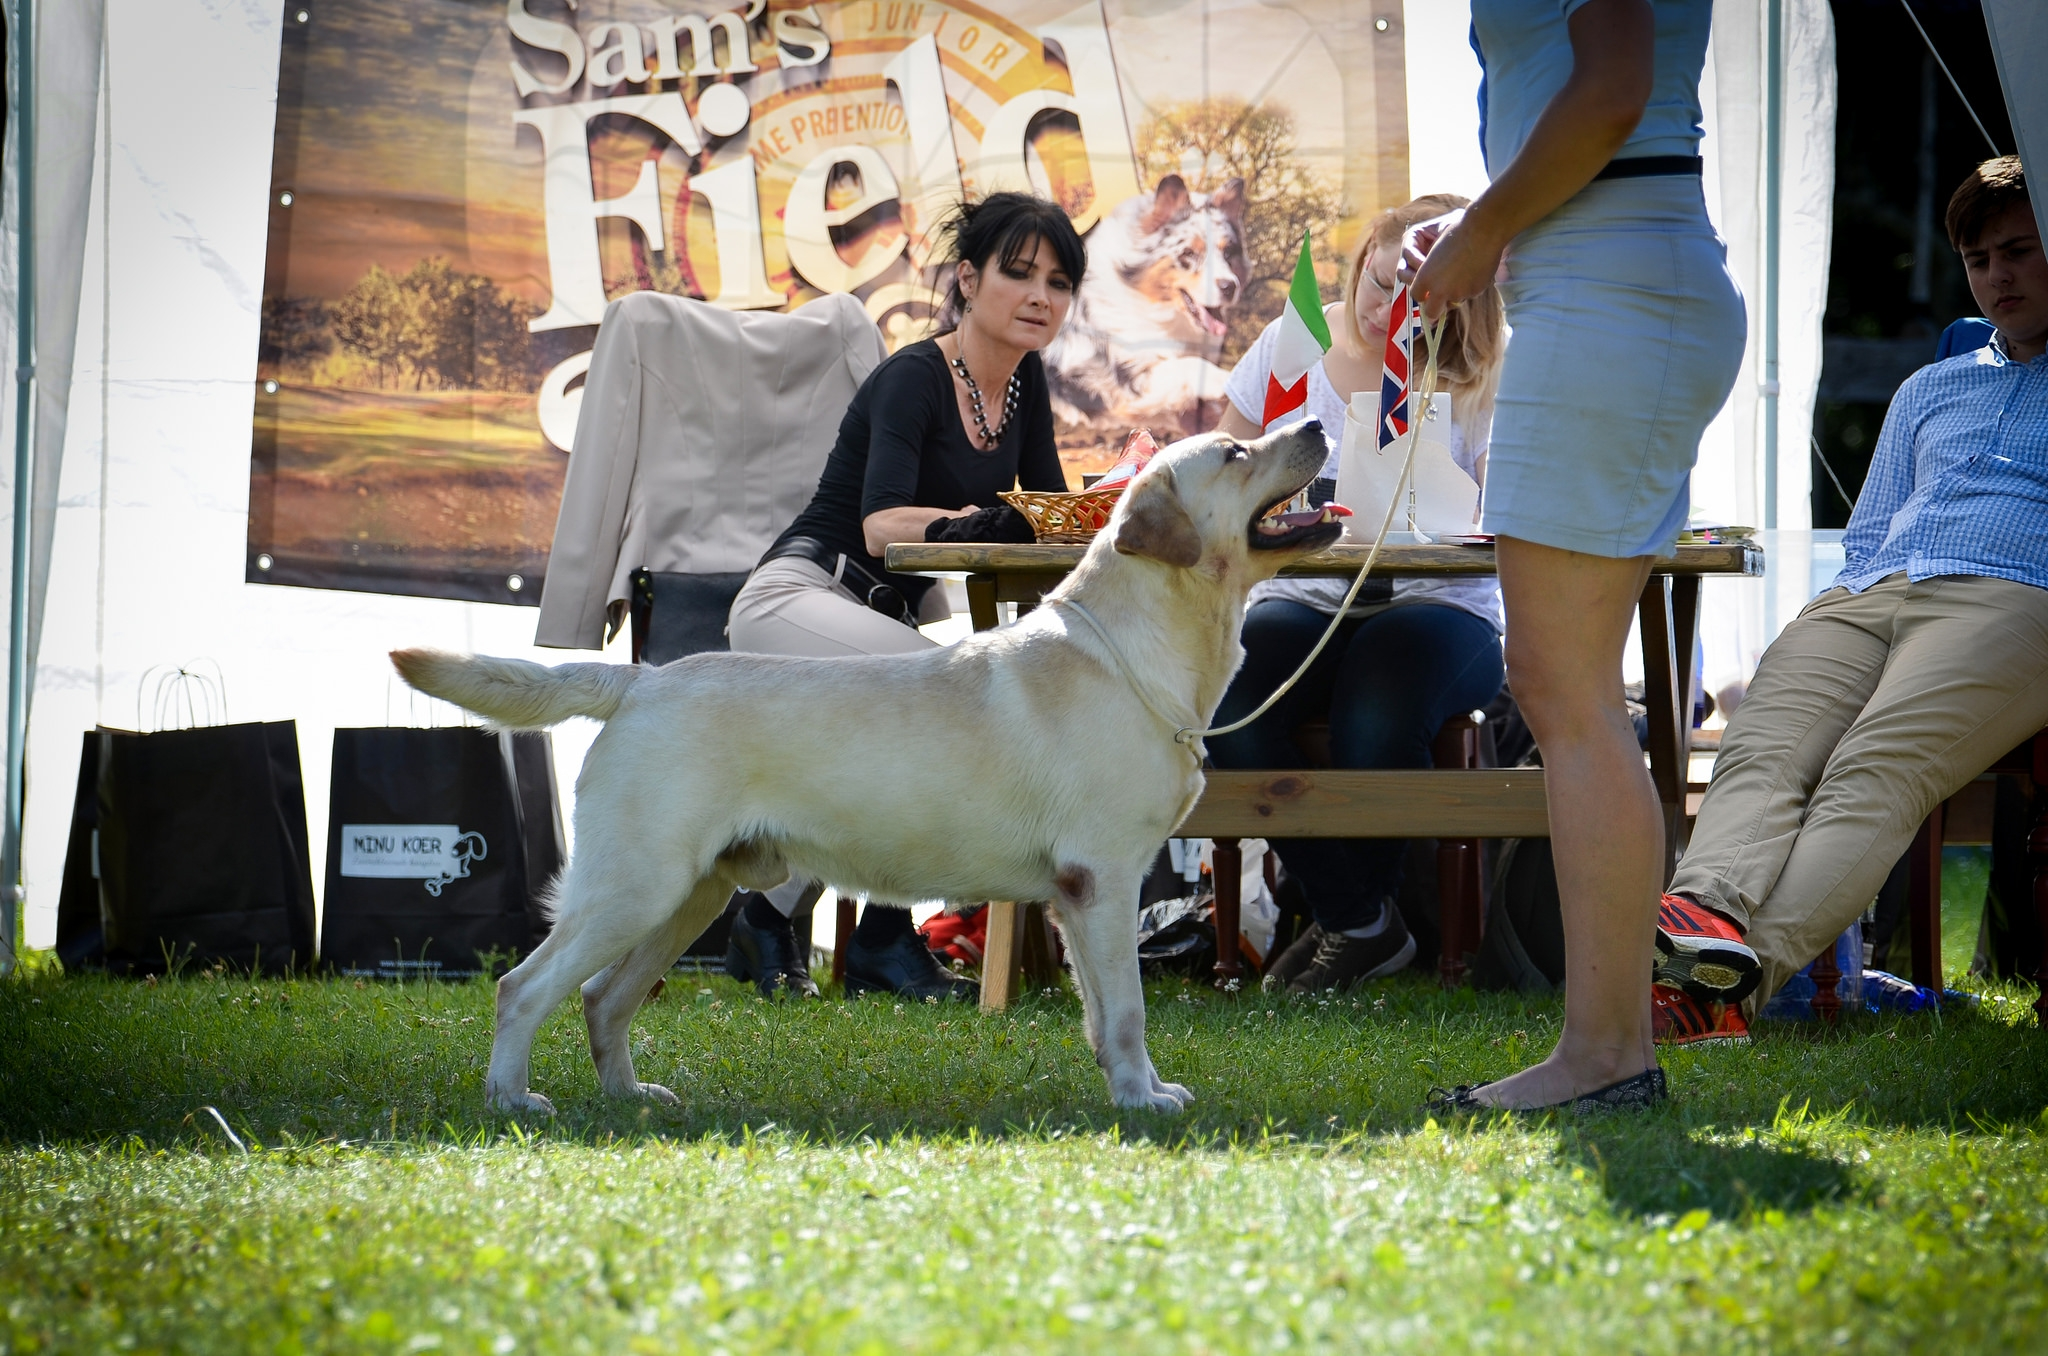 At the Retriever Specialty 2016 in Southern Estonia, judged by Rosa Agostini. Photo by Sodelight Photography.